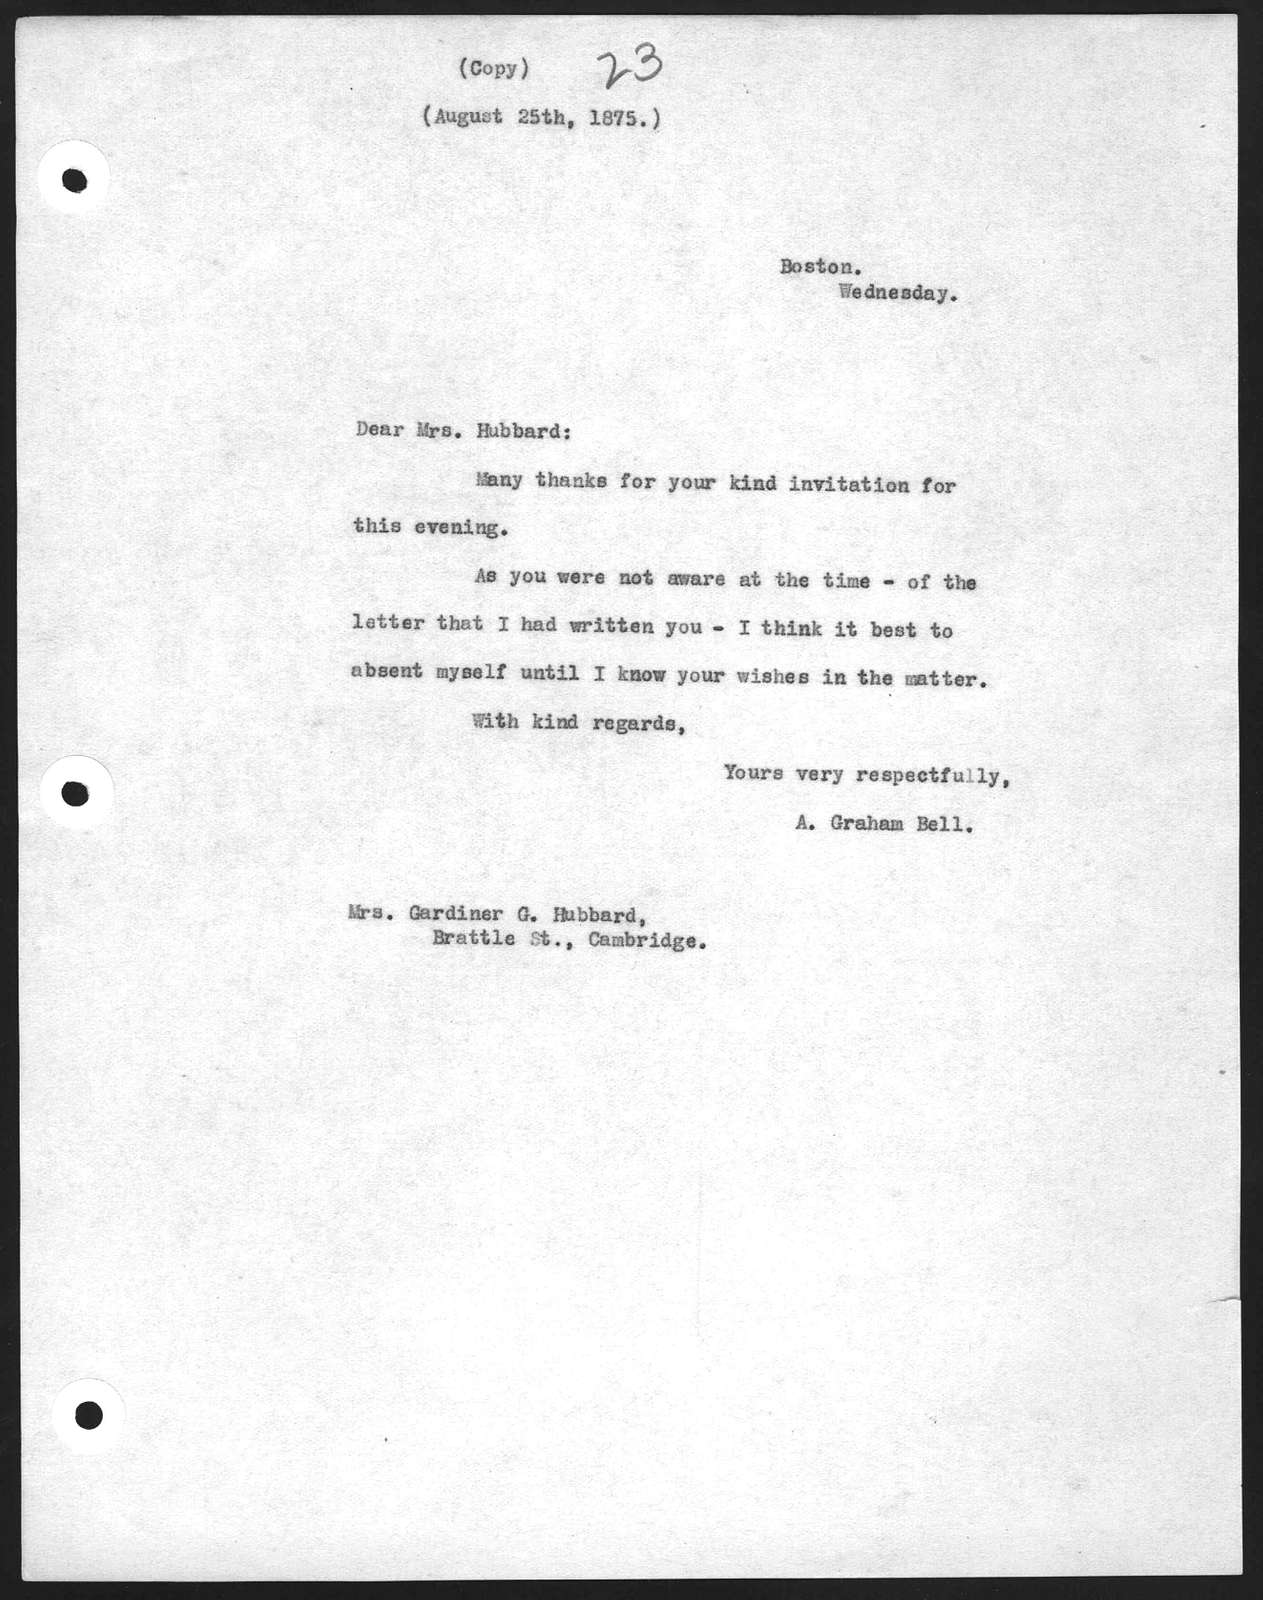 Letter from Alexander Graham Bell to Gertrude McCurdy Hubbard, August 25, 1875